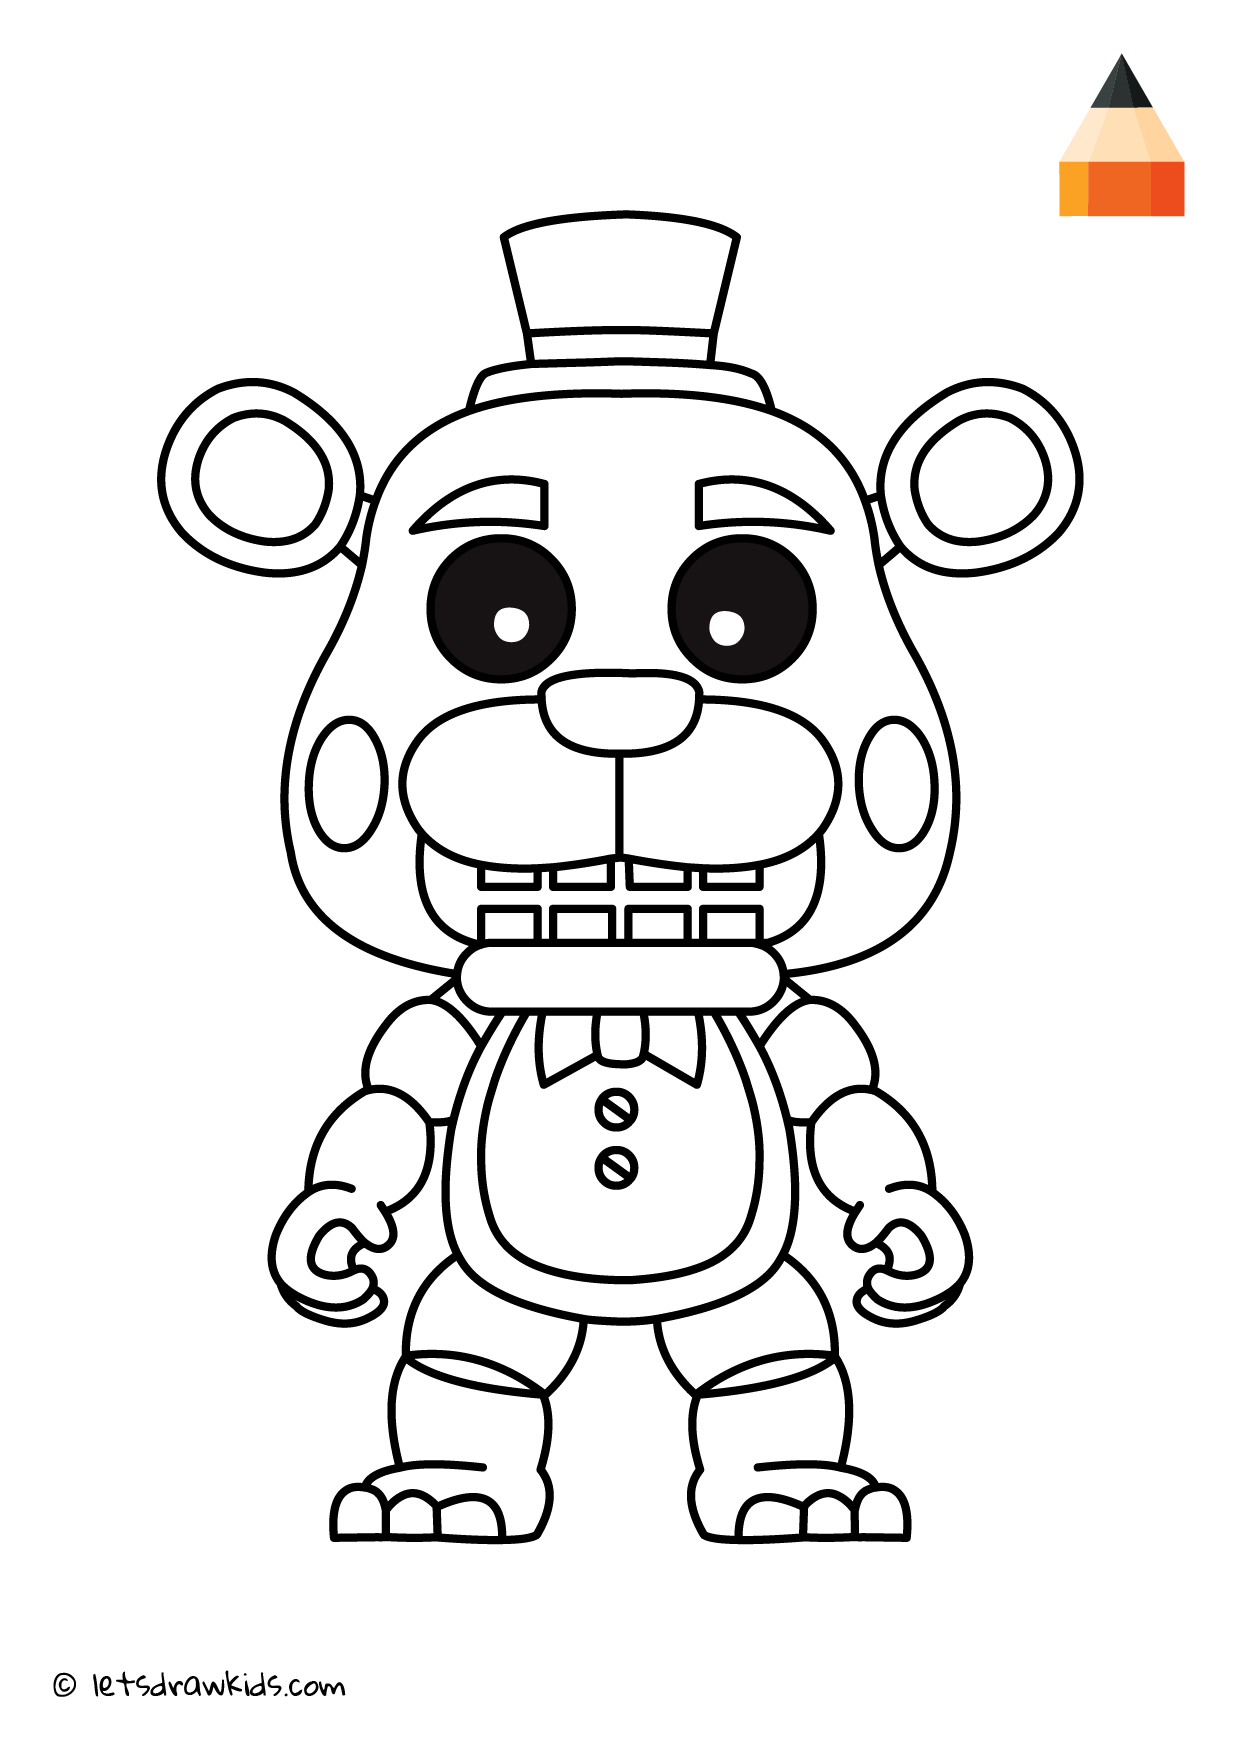 Coloring Page - Freddy Fazbear | Coloring pages | let\'s draw kids ...